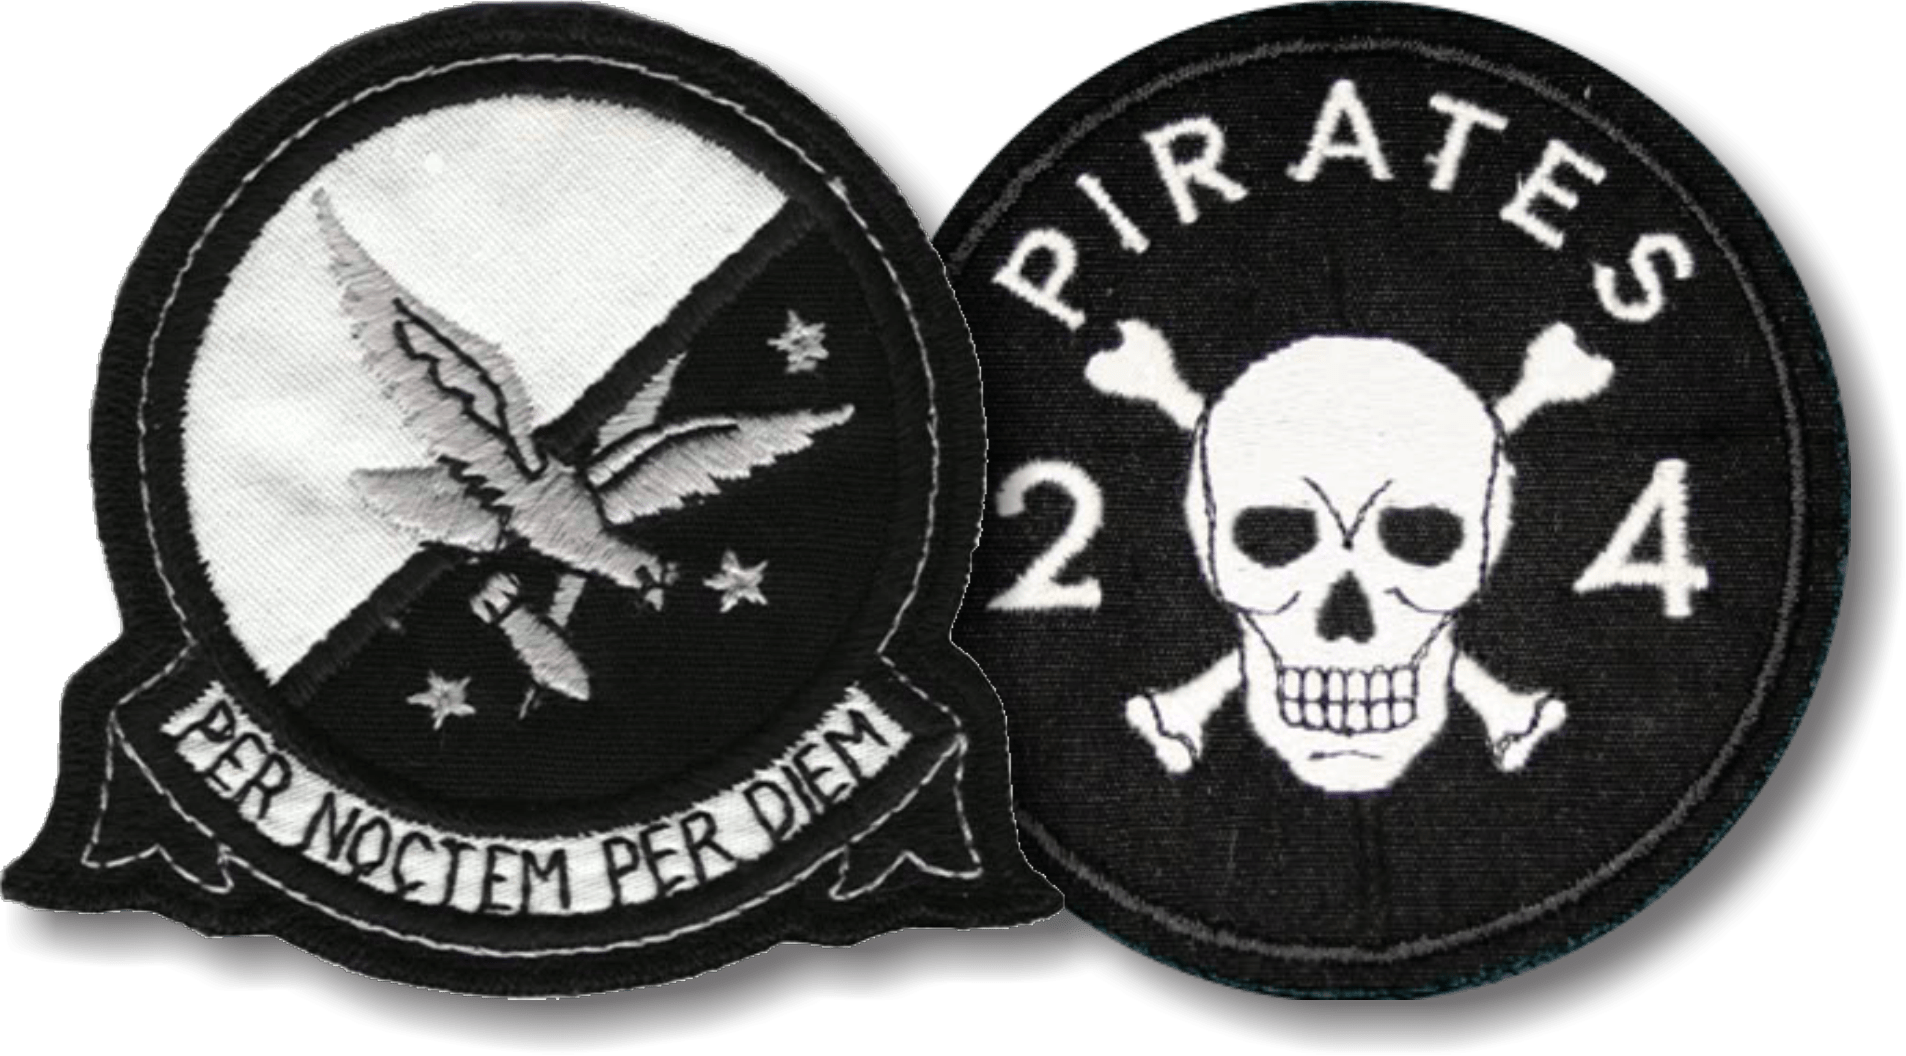 Squadron and Pirates Combined